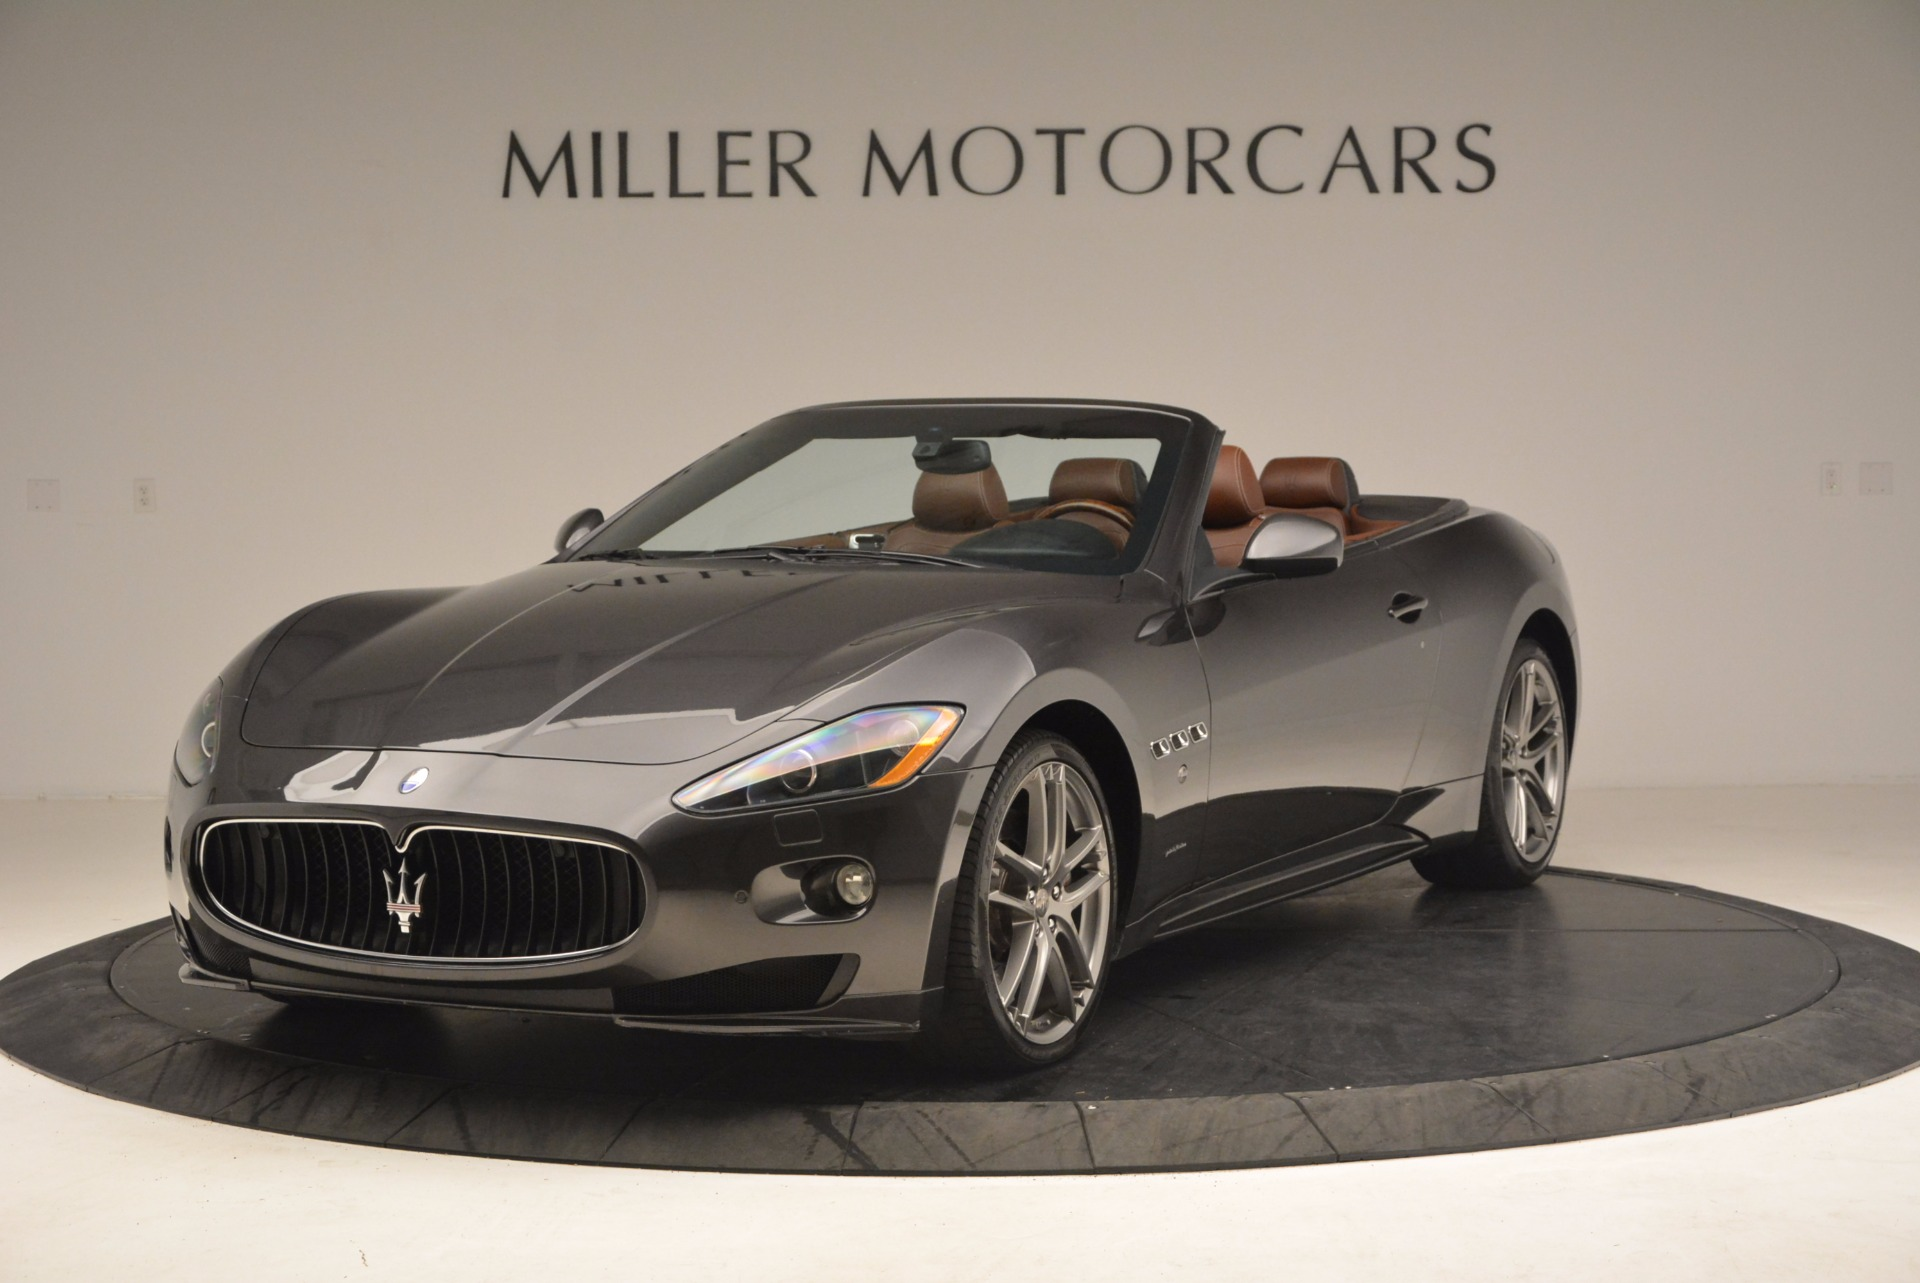 Used 2012 Maserati GranTurismo Sport for sale Sold at Bentley Greenwich in Greenwich CT 06830 1